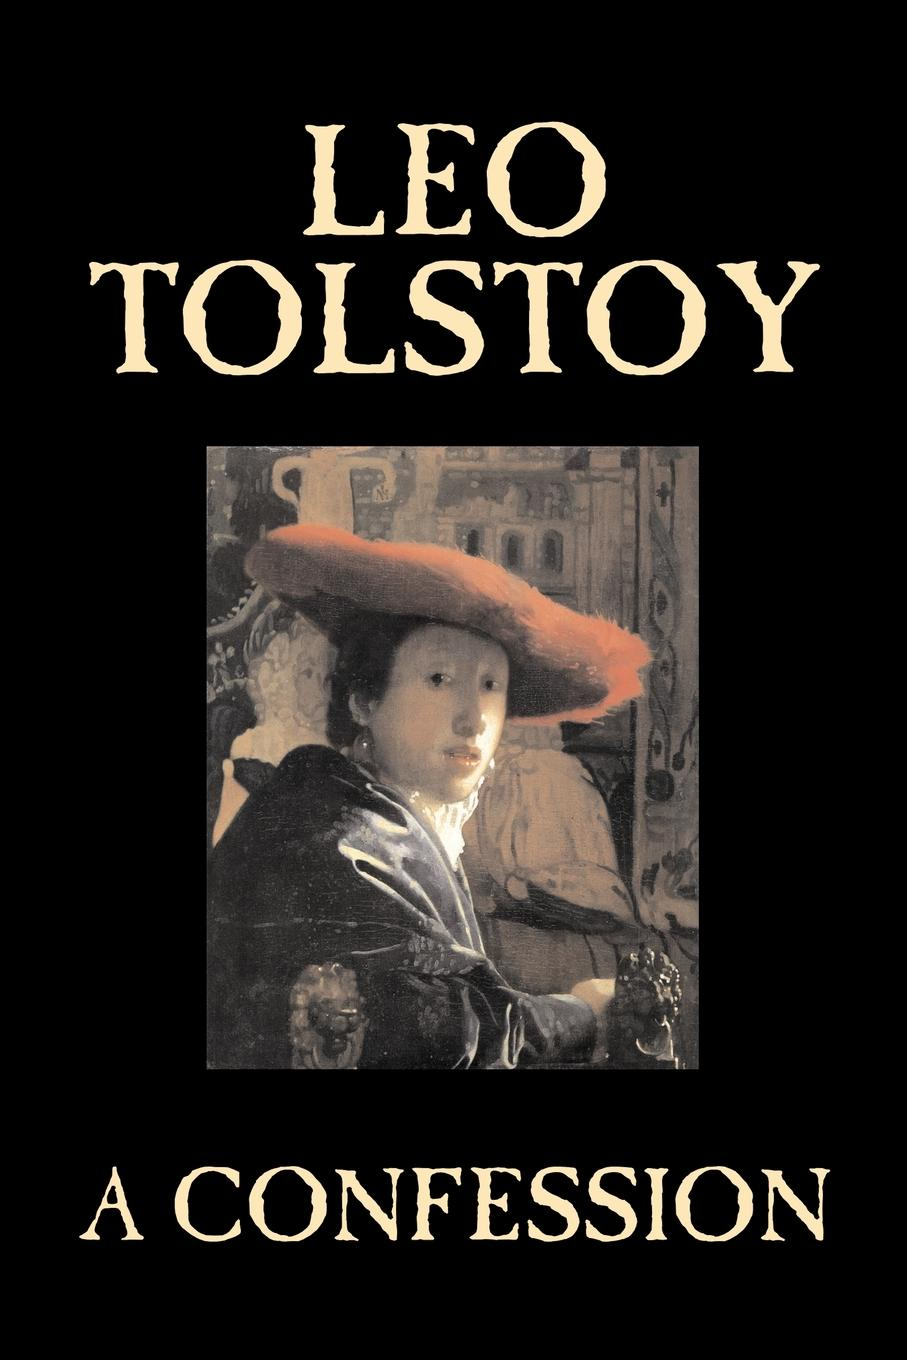 Leo Tolstoy A Confession by Leo Tolstoy, Religion, Christian Theology, Philosophy leo tolstoy fyodor mikhailovich dostoevsky embers of a revolution by leo tolstoy fiction classics literary